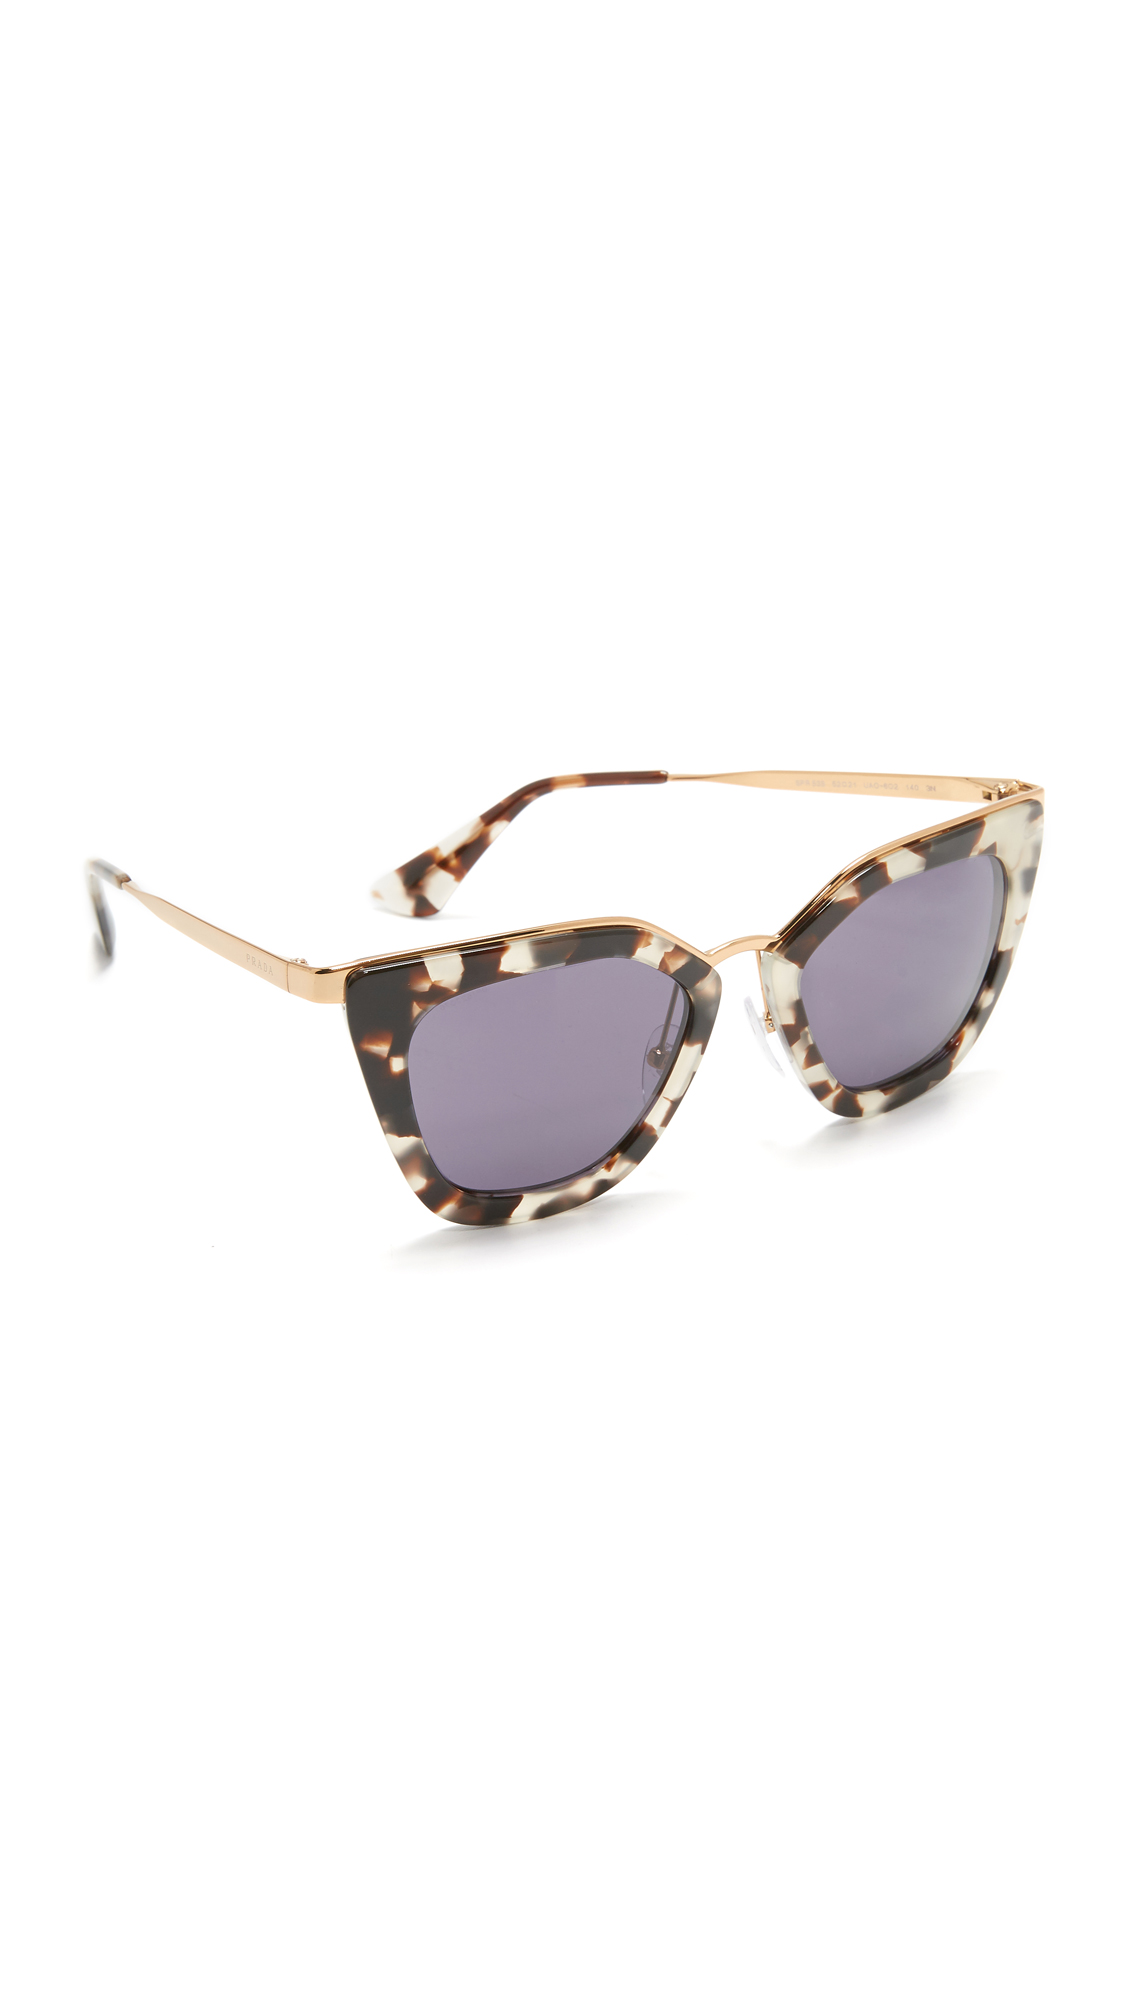 Prada Metal Bridge Sunglasses - White Havana/Gold Violet at Shopbop